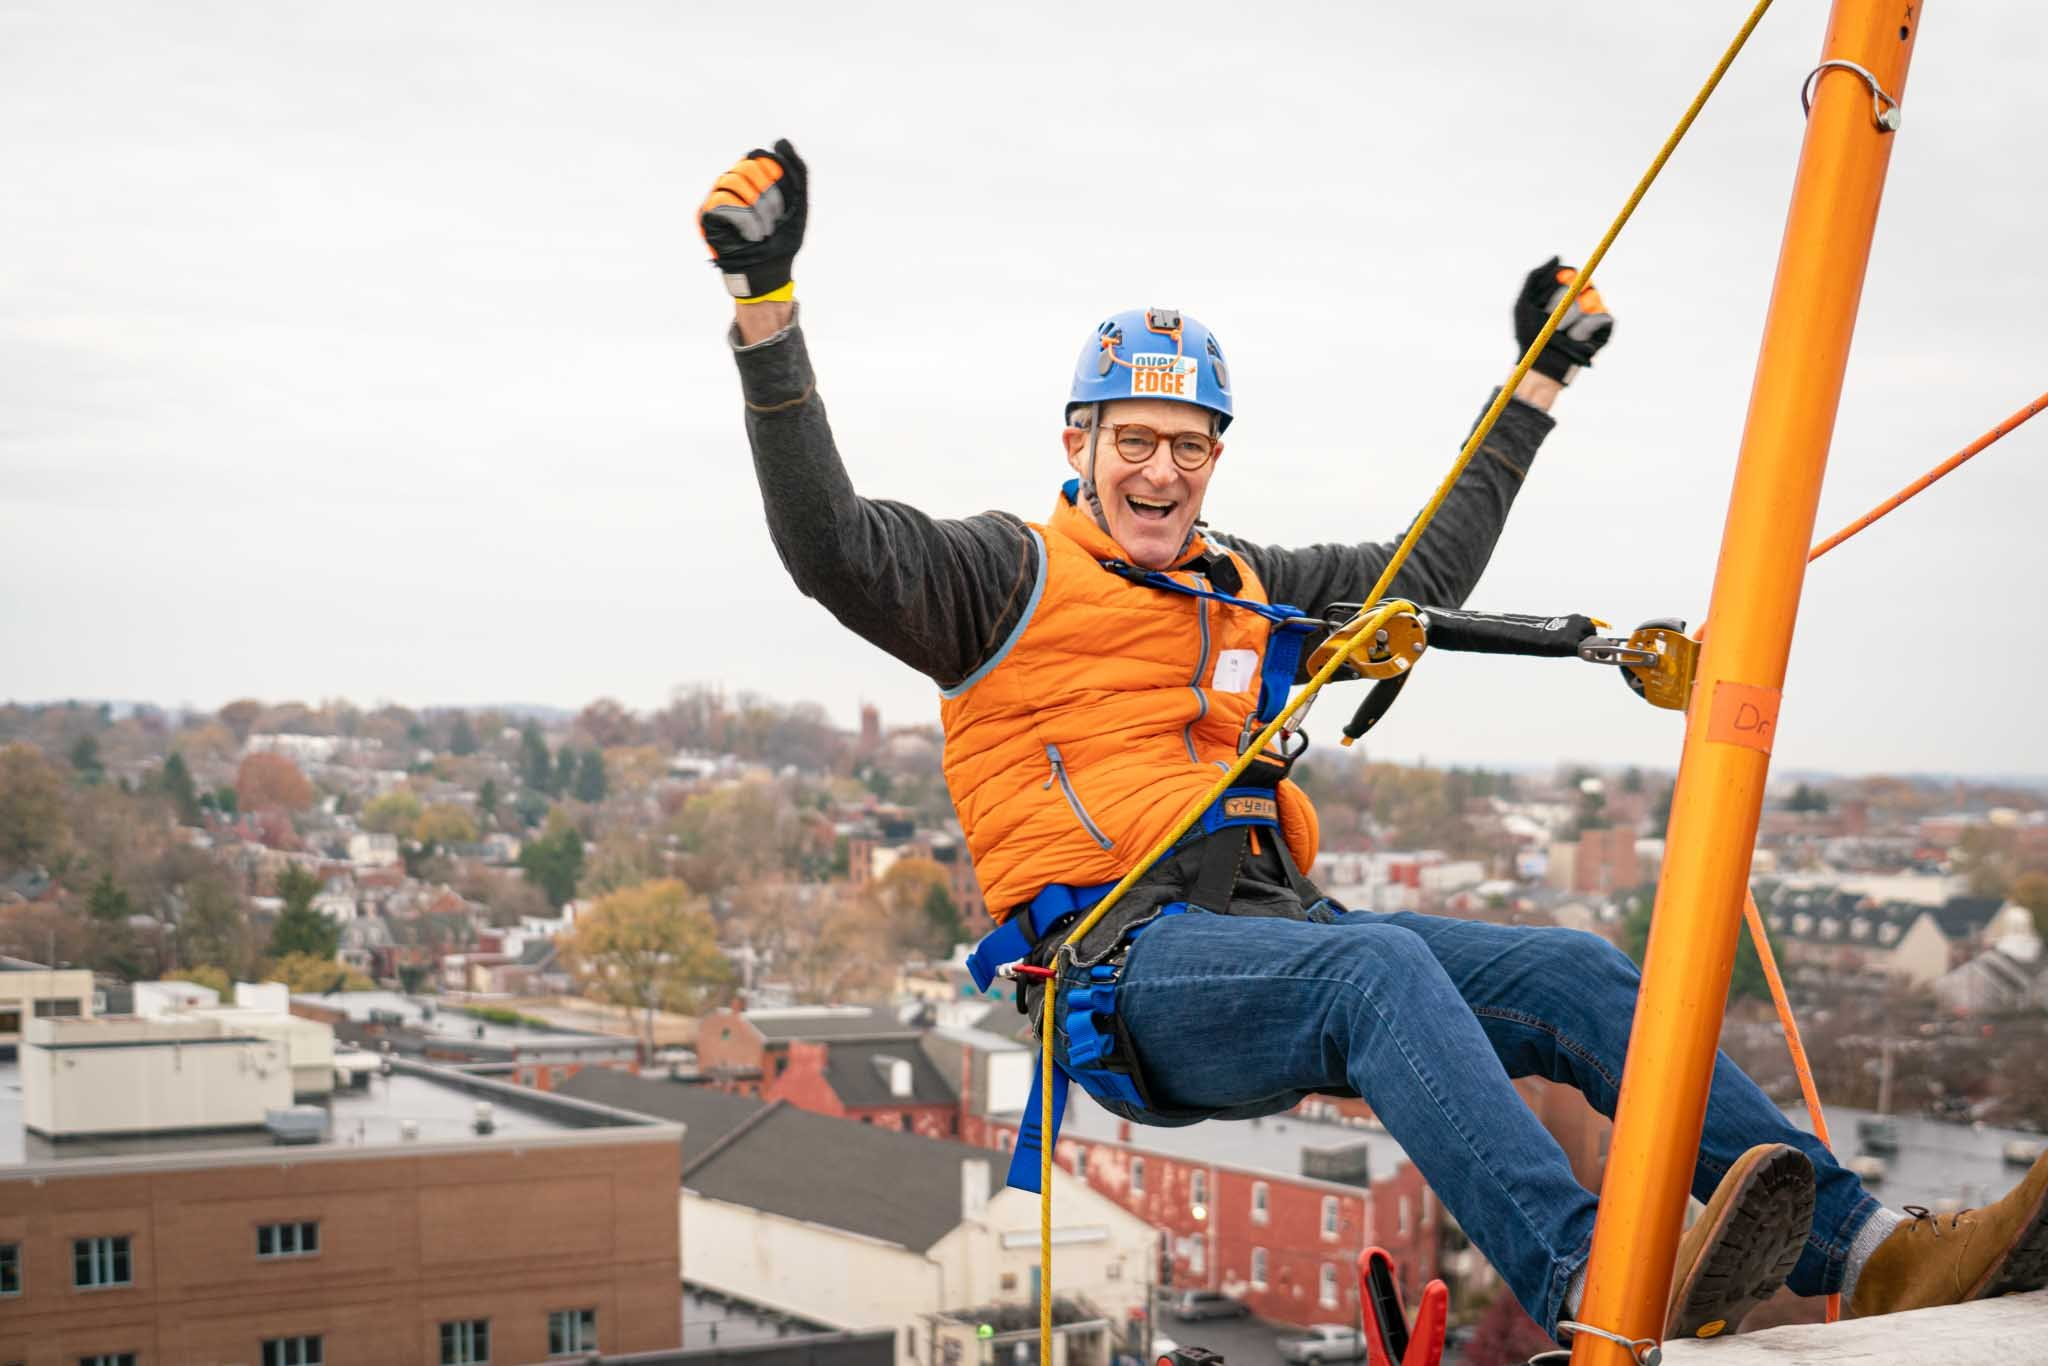 An Eye Drop participant prepares to head down the side of the Holiday Inn Lancaster. (Soure: VisionCorps)